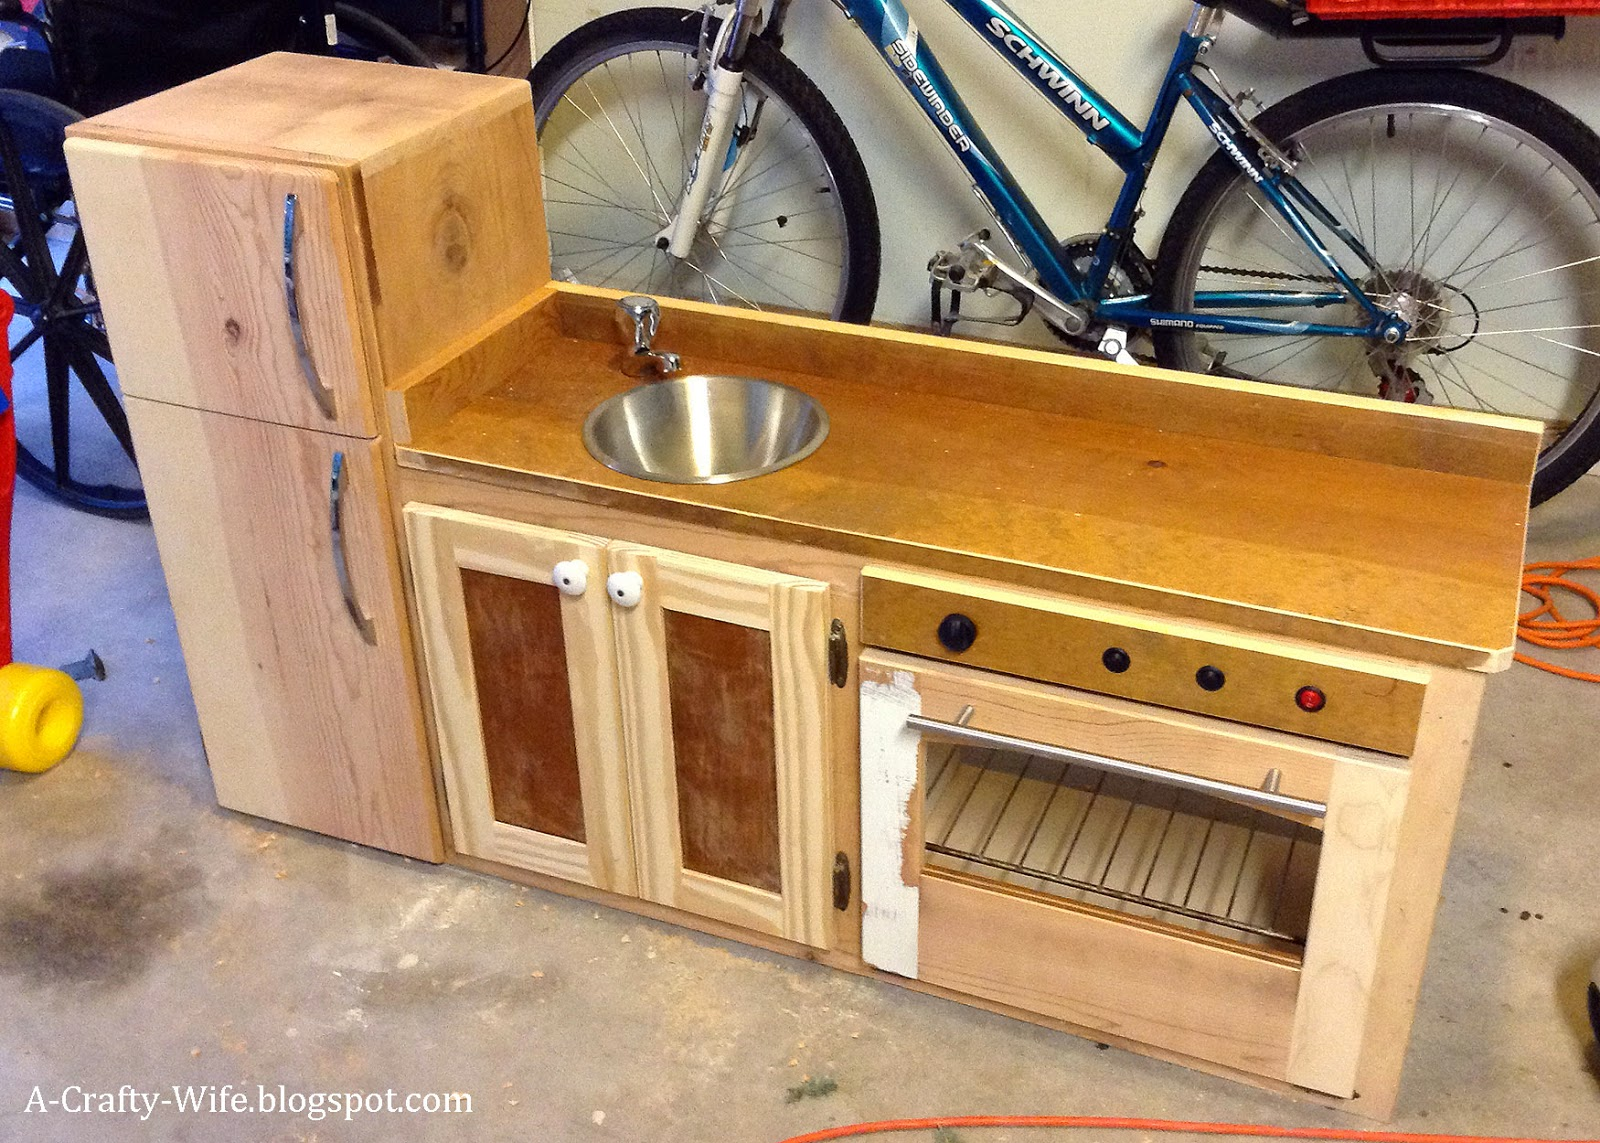 Make play kitchen from old kitchen cabinets and scrap wood.